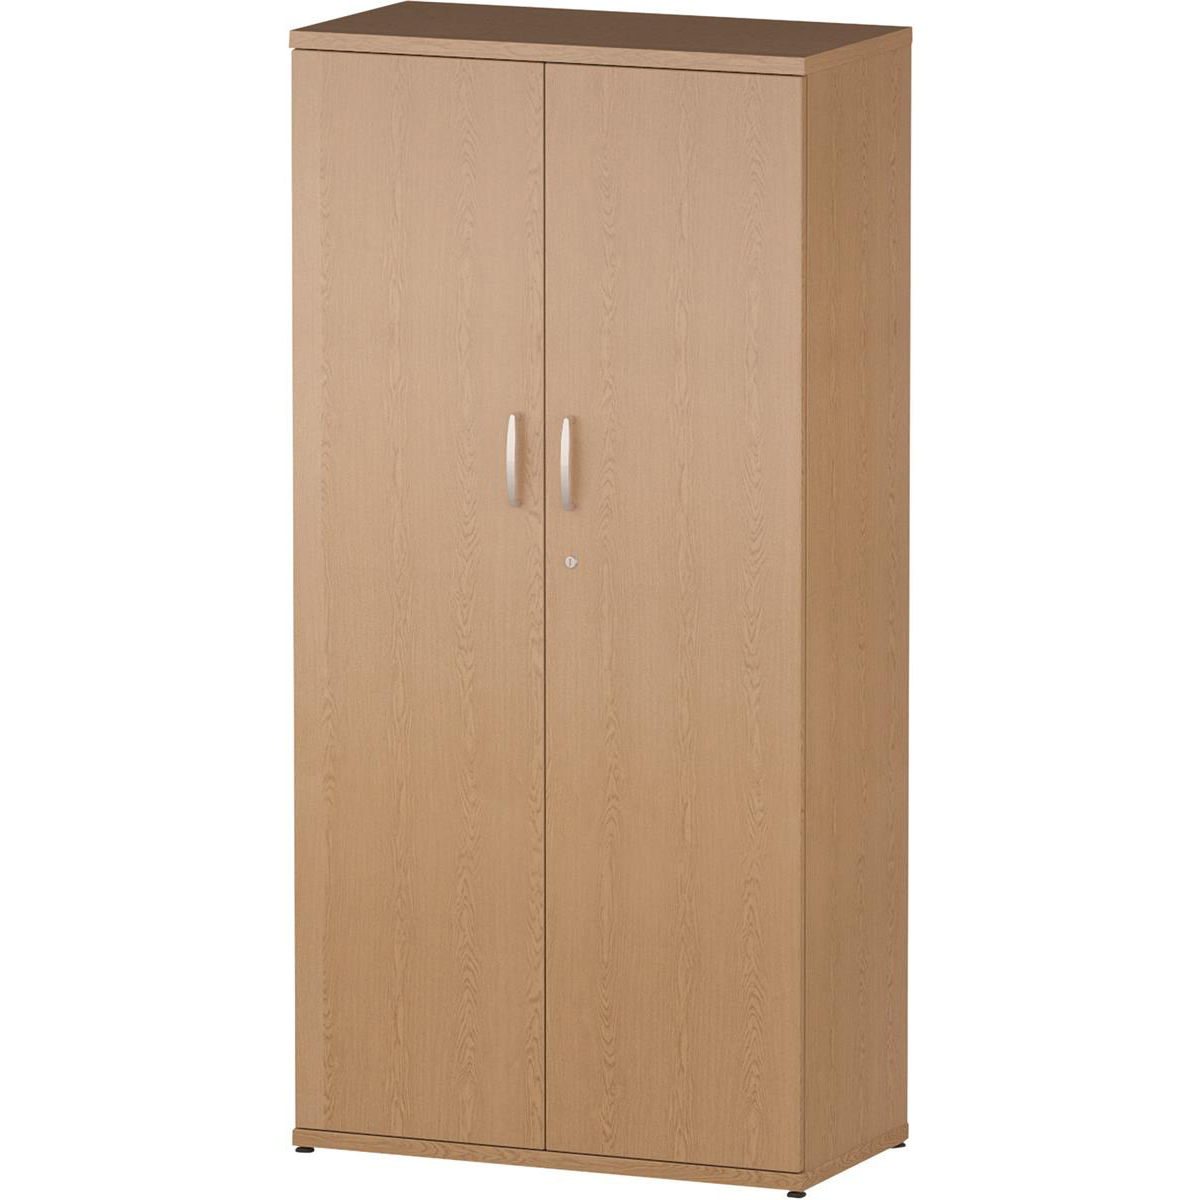 Trexus Office High Cupboard 800x400x1600mm 3 Shelves Oak Ref I000802